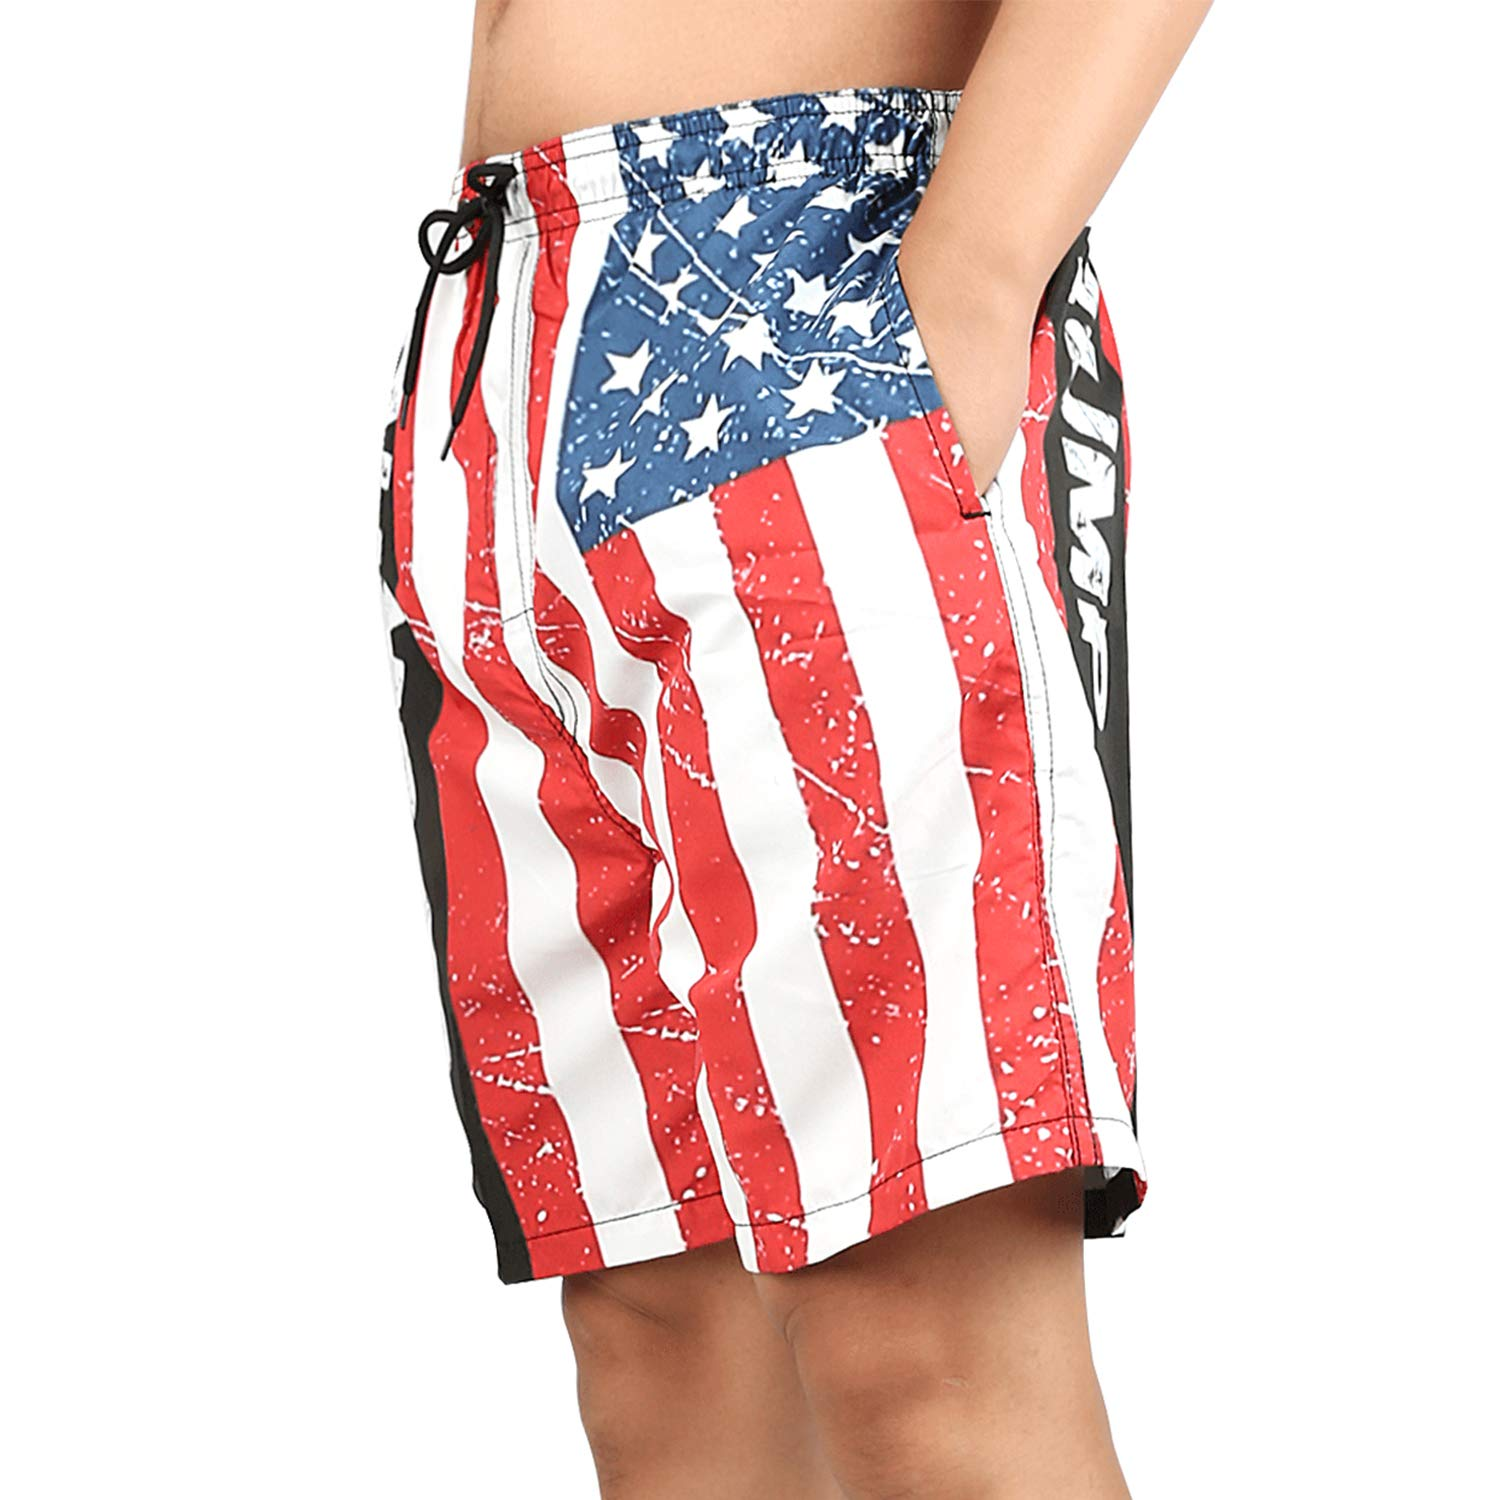 ZQ-SOUTH Trump 2020 American Flag Mens Printing Beach Shorts Swim Trunk Quick Dry, Medium